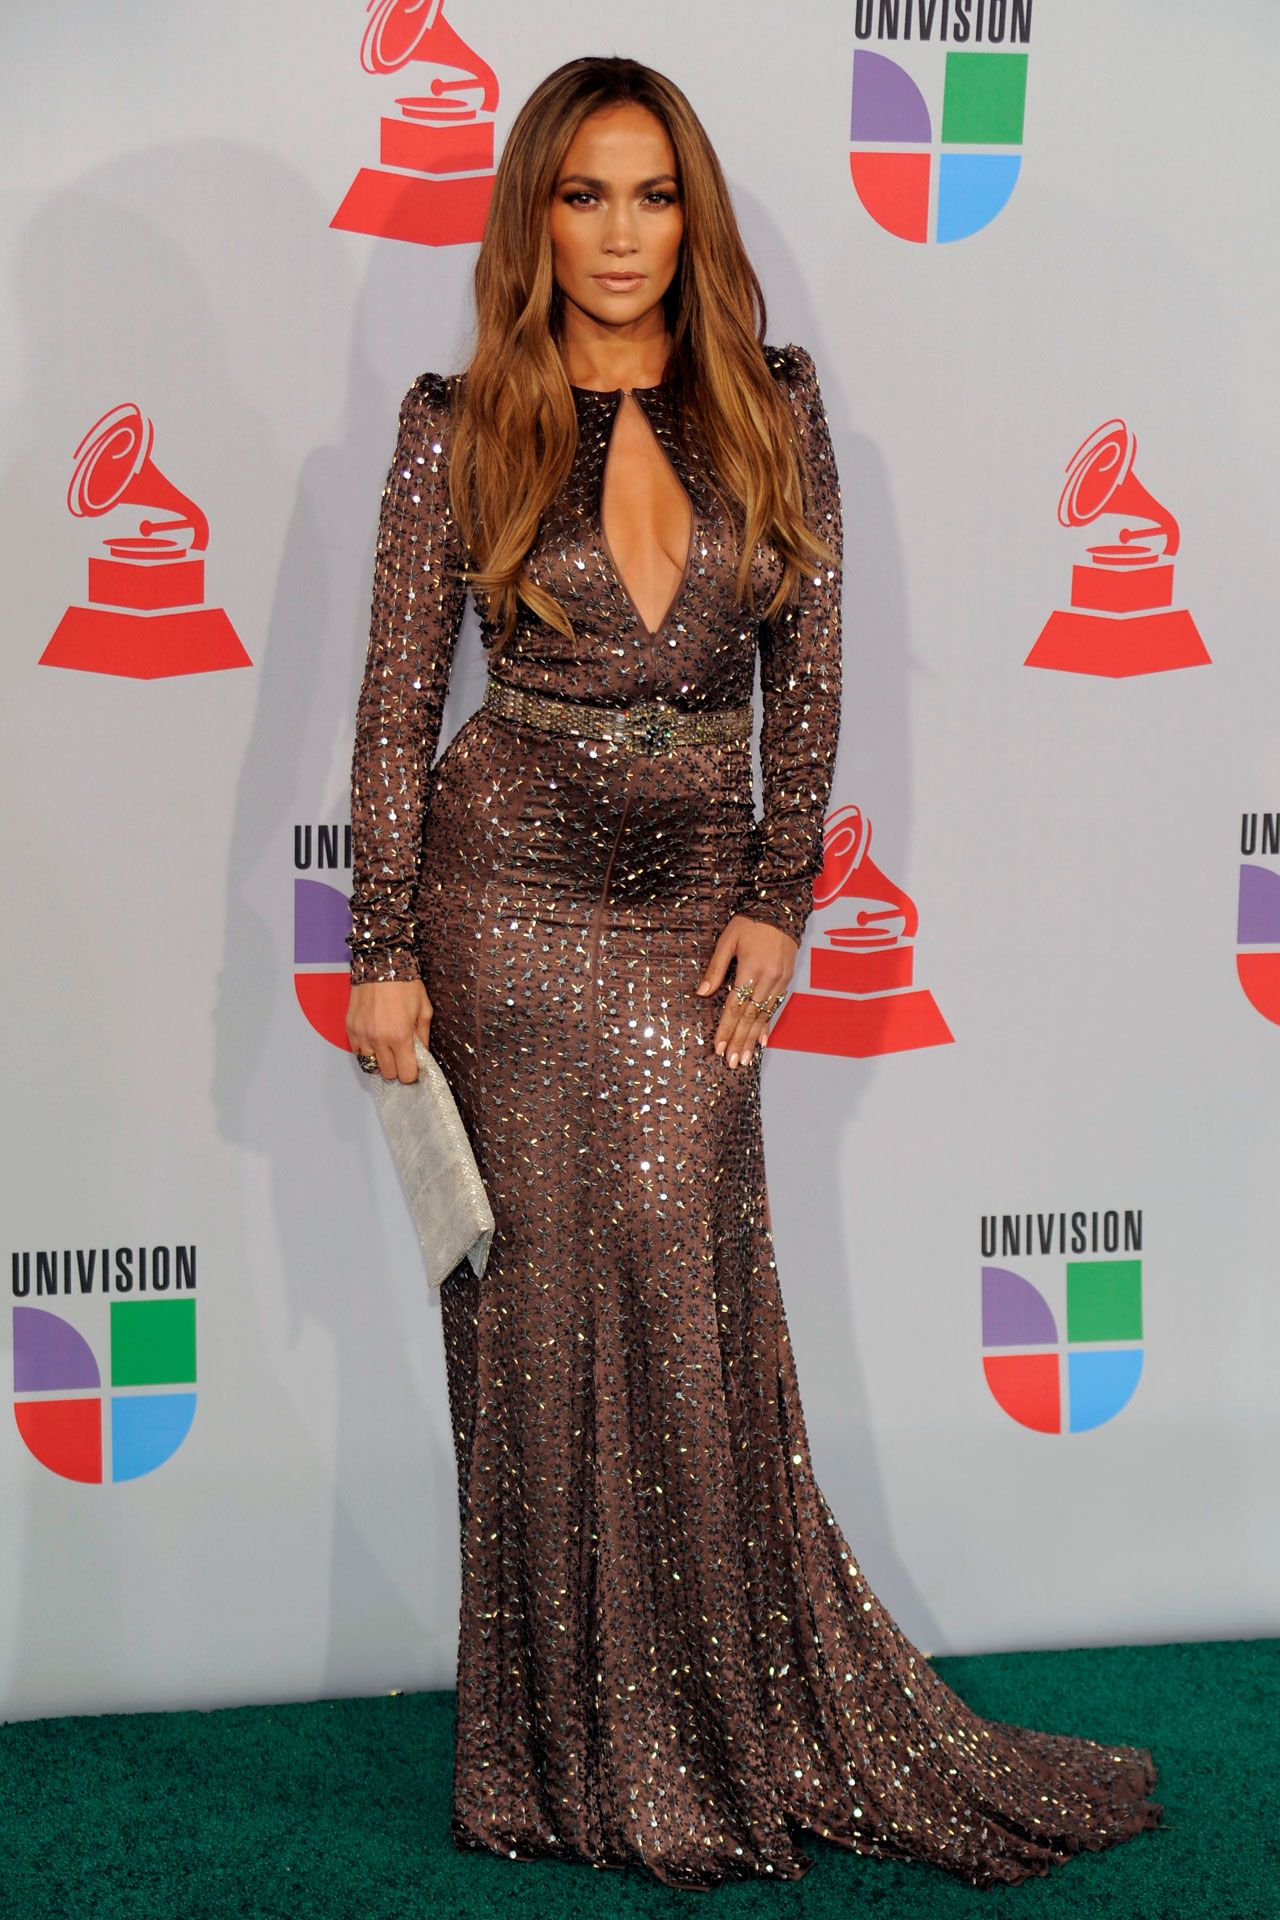 JLo Rocks 10 Sexy Looks At The AMAs - style etcetera